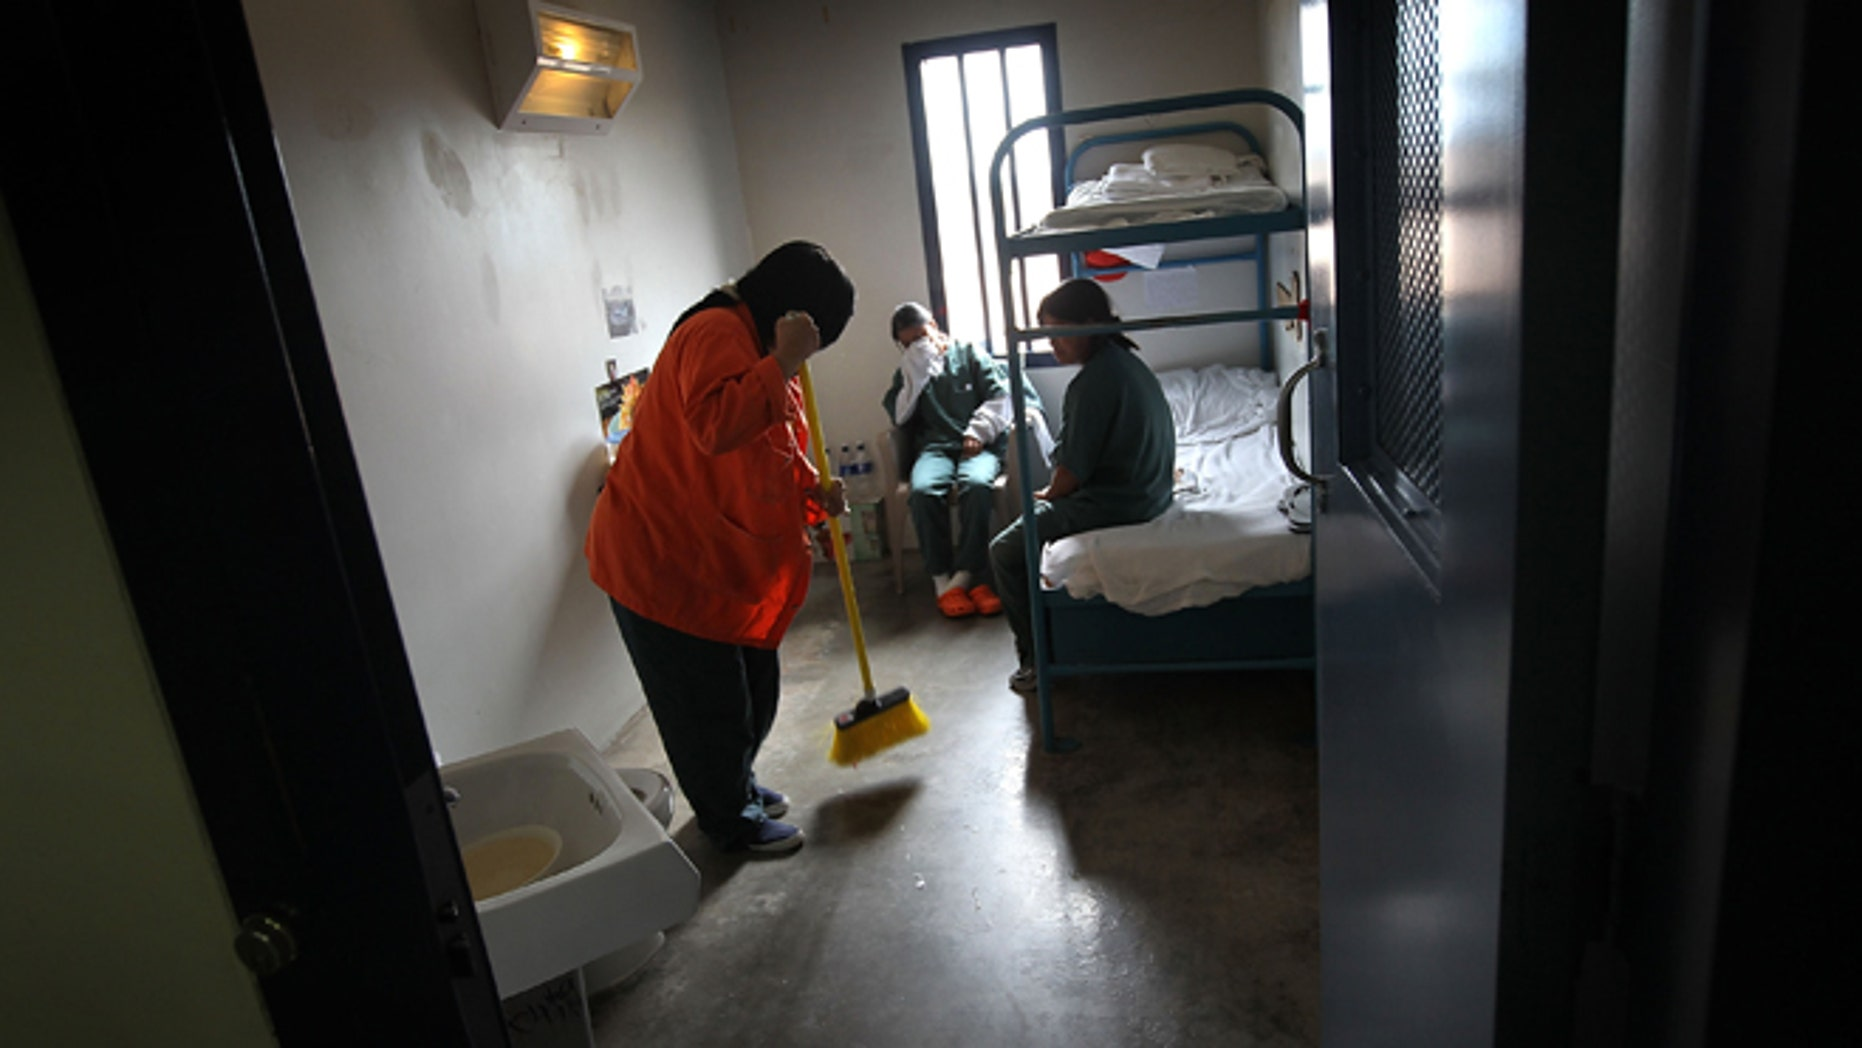 ELOY, AZ - JULY 30:  A female detainee cleans a housing cell in a women's wing at an detention facility for illegal immigrants on July 30, 2010 in Eloy, Arizona. Most immigrants at the center are awaiting deportation or removal and return to their home countries, while some are interned at the facility while their immigration cases are being reviewed. The U.S. Immigration and Customs Enforcement (ICE), in Arizona holds almost 3,000 immigrants statewide, all at the detention facilities in  Eloy and nearby Florence. Arizona, which deports and returns more illegal immigrants than any other state, is currently appealing a judge's ruling suspending controversial provisions of Arizona's immigration enforcement law SB 1070.  (Photo by John Moore/Getty Images)